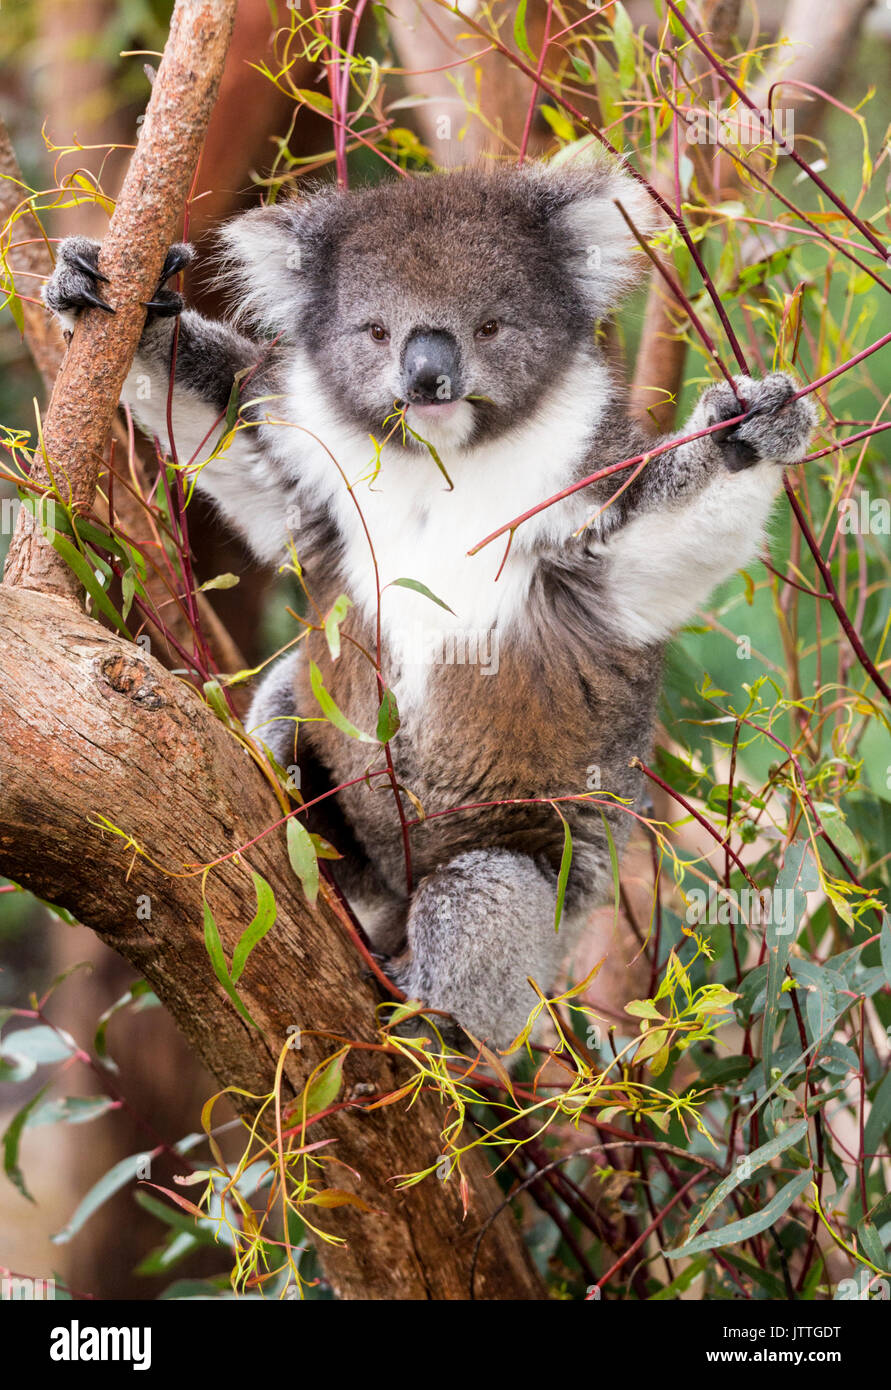 Fluffy young koala eating gum leaves Stock Photo